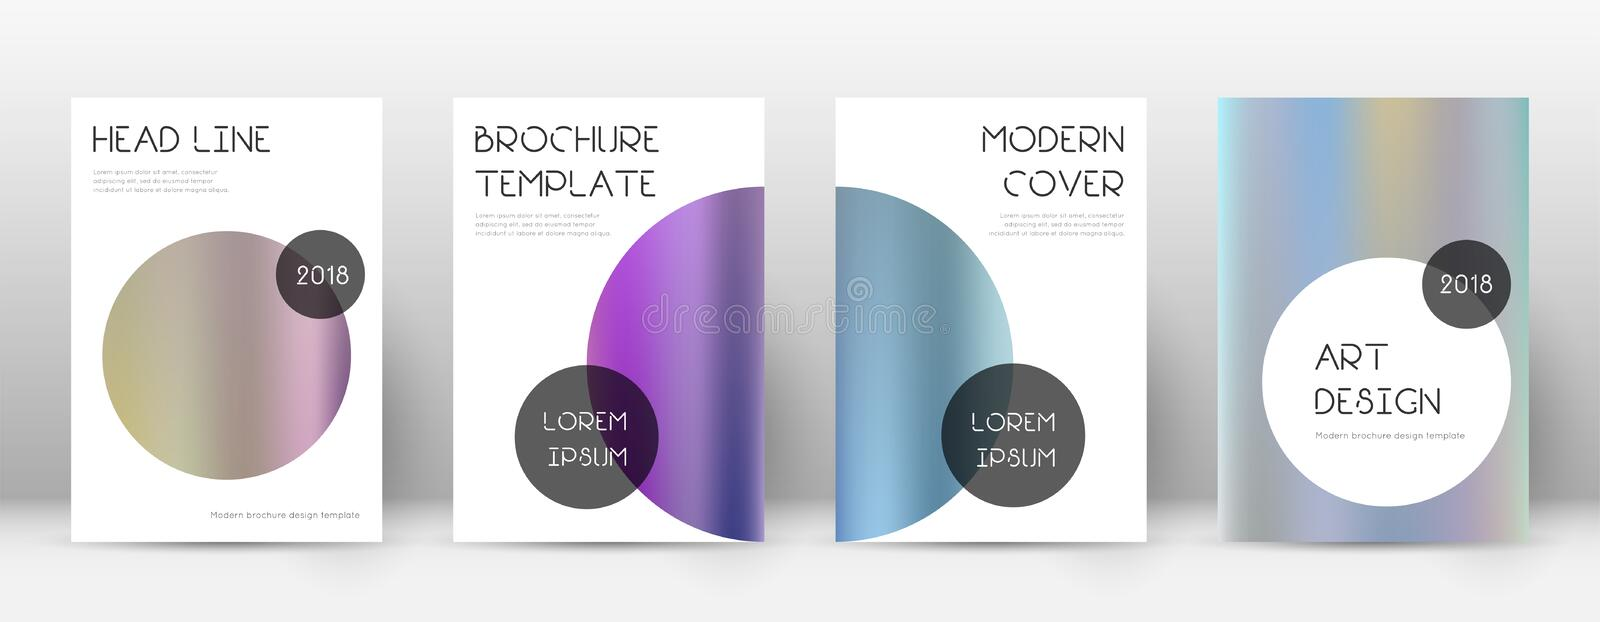 Flyer layout. Trendy exceptional template for Brochure, Annual Report, Magazine, Poster, Corporate Presentation, Portfolio, Flyer. Beauteous color gradients stock illustration